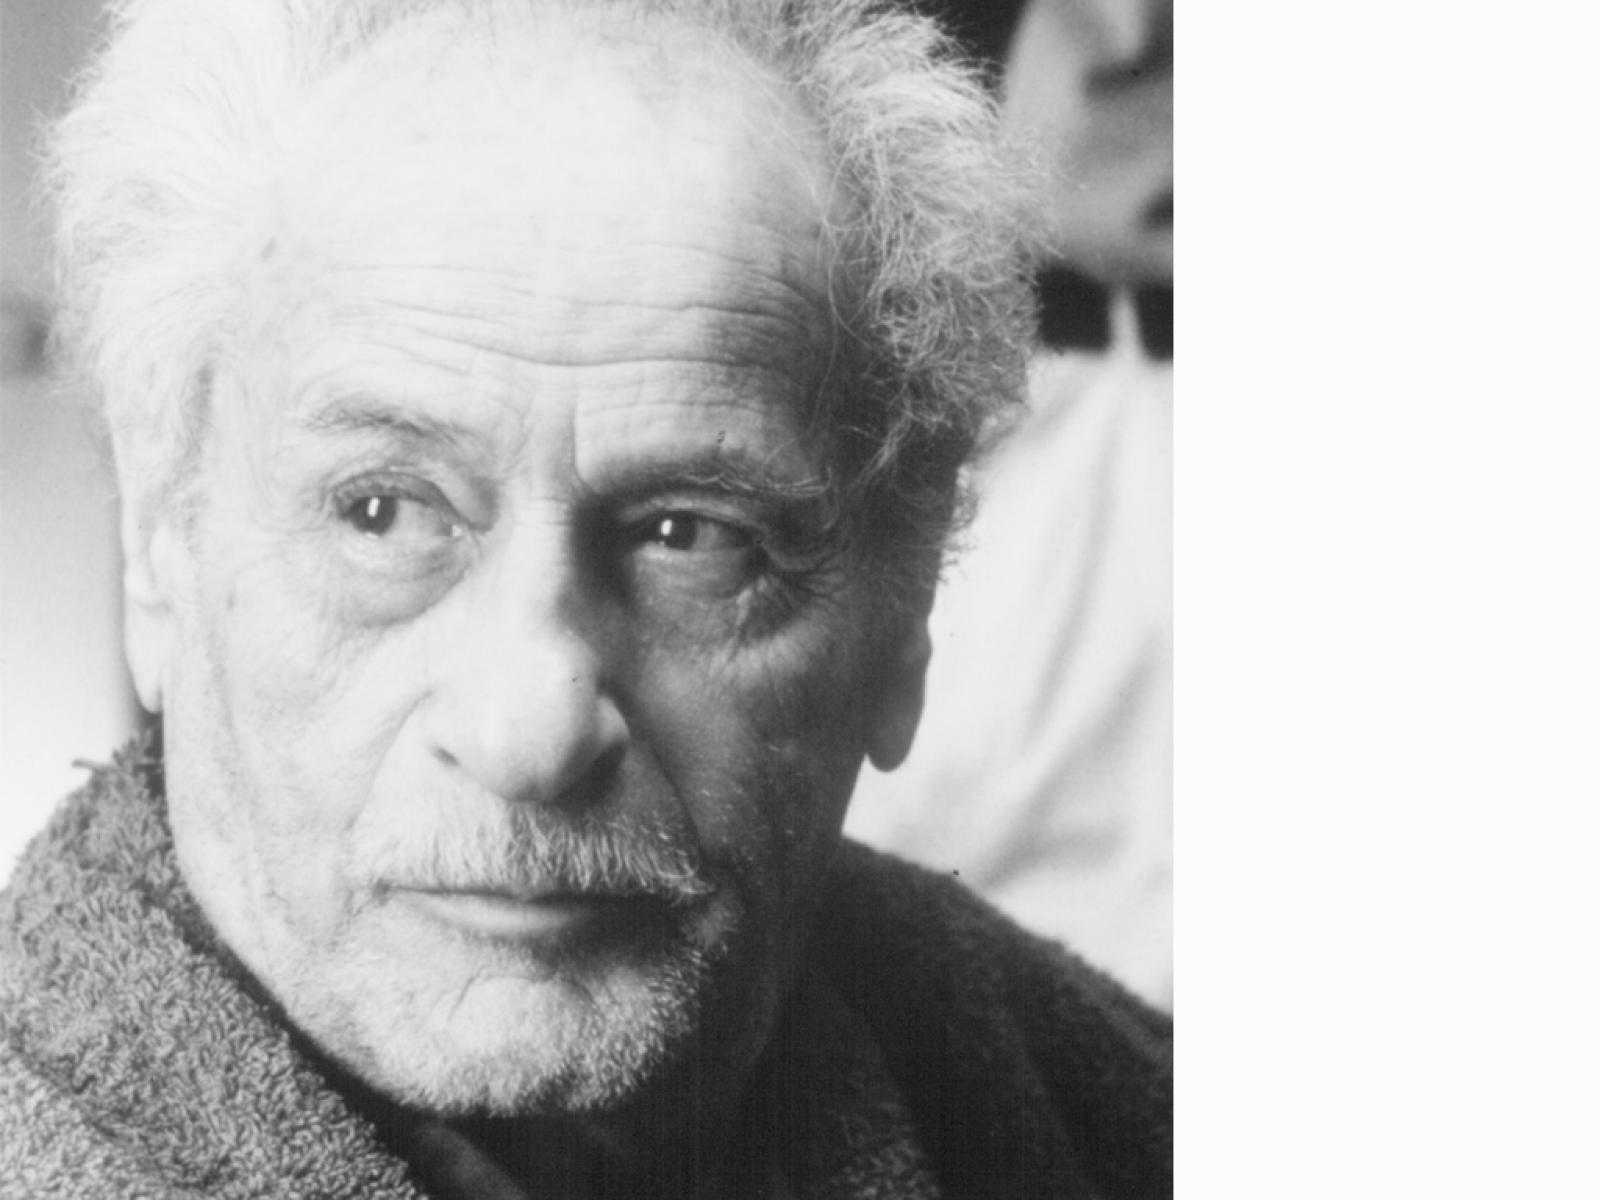 Legendary Character Actor, Eli Wallach, Passes Away At The Age Of 98